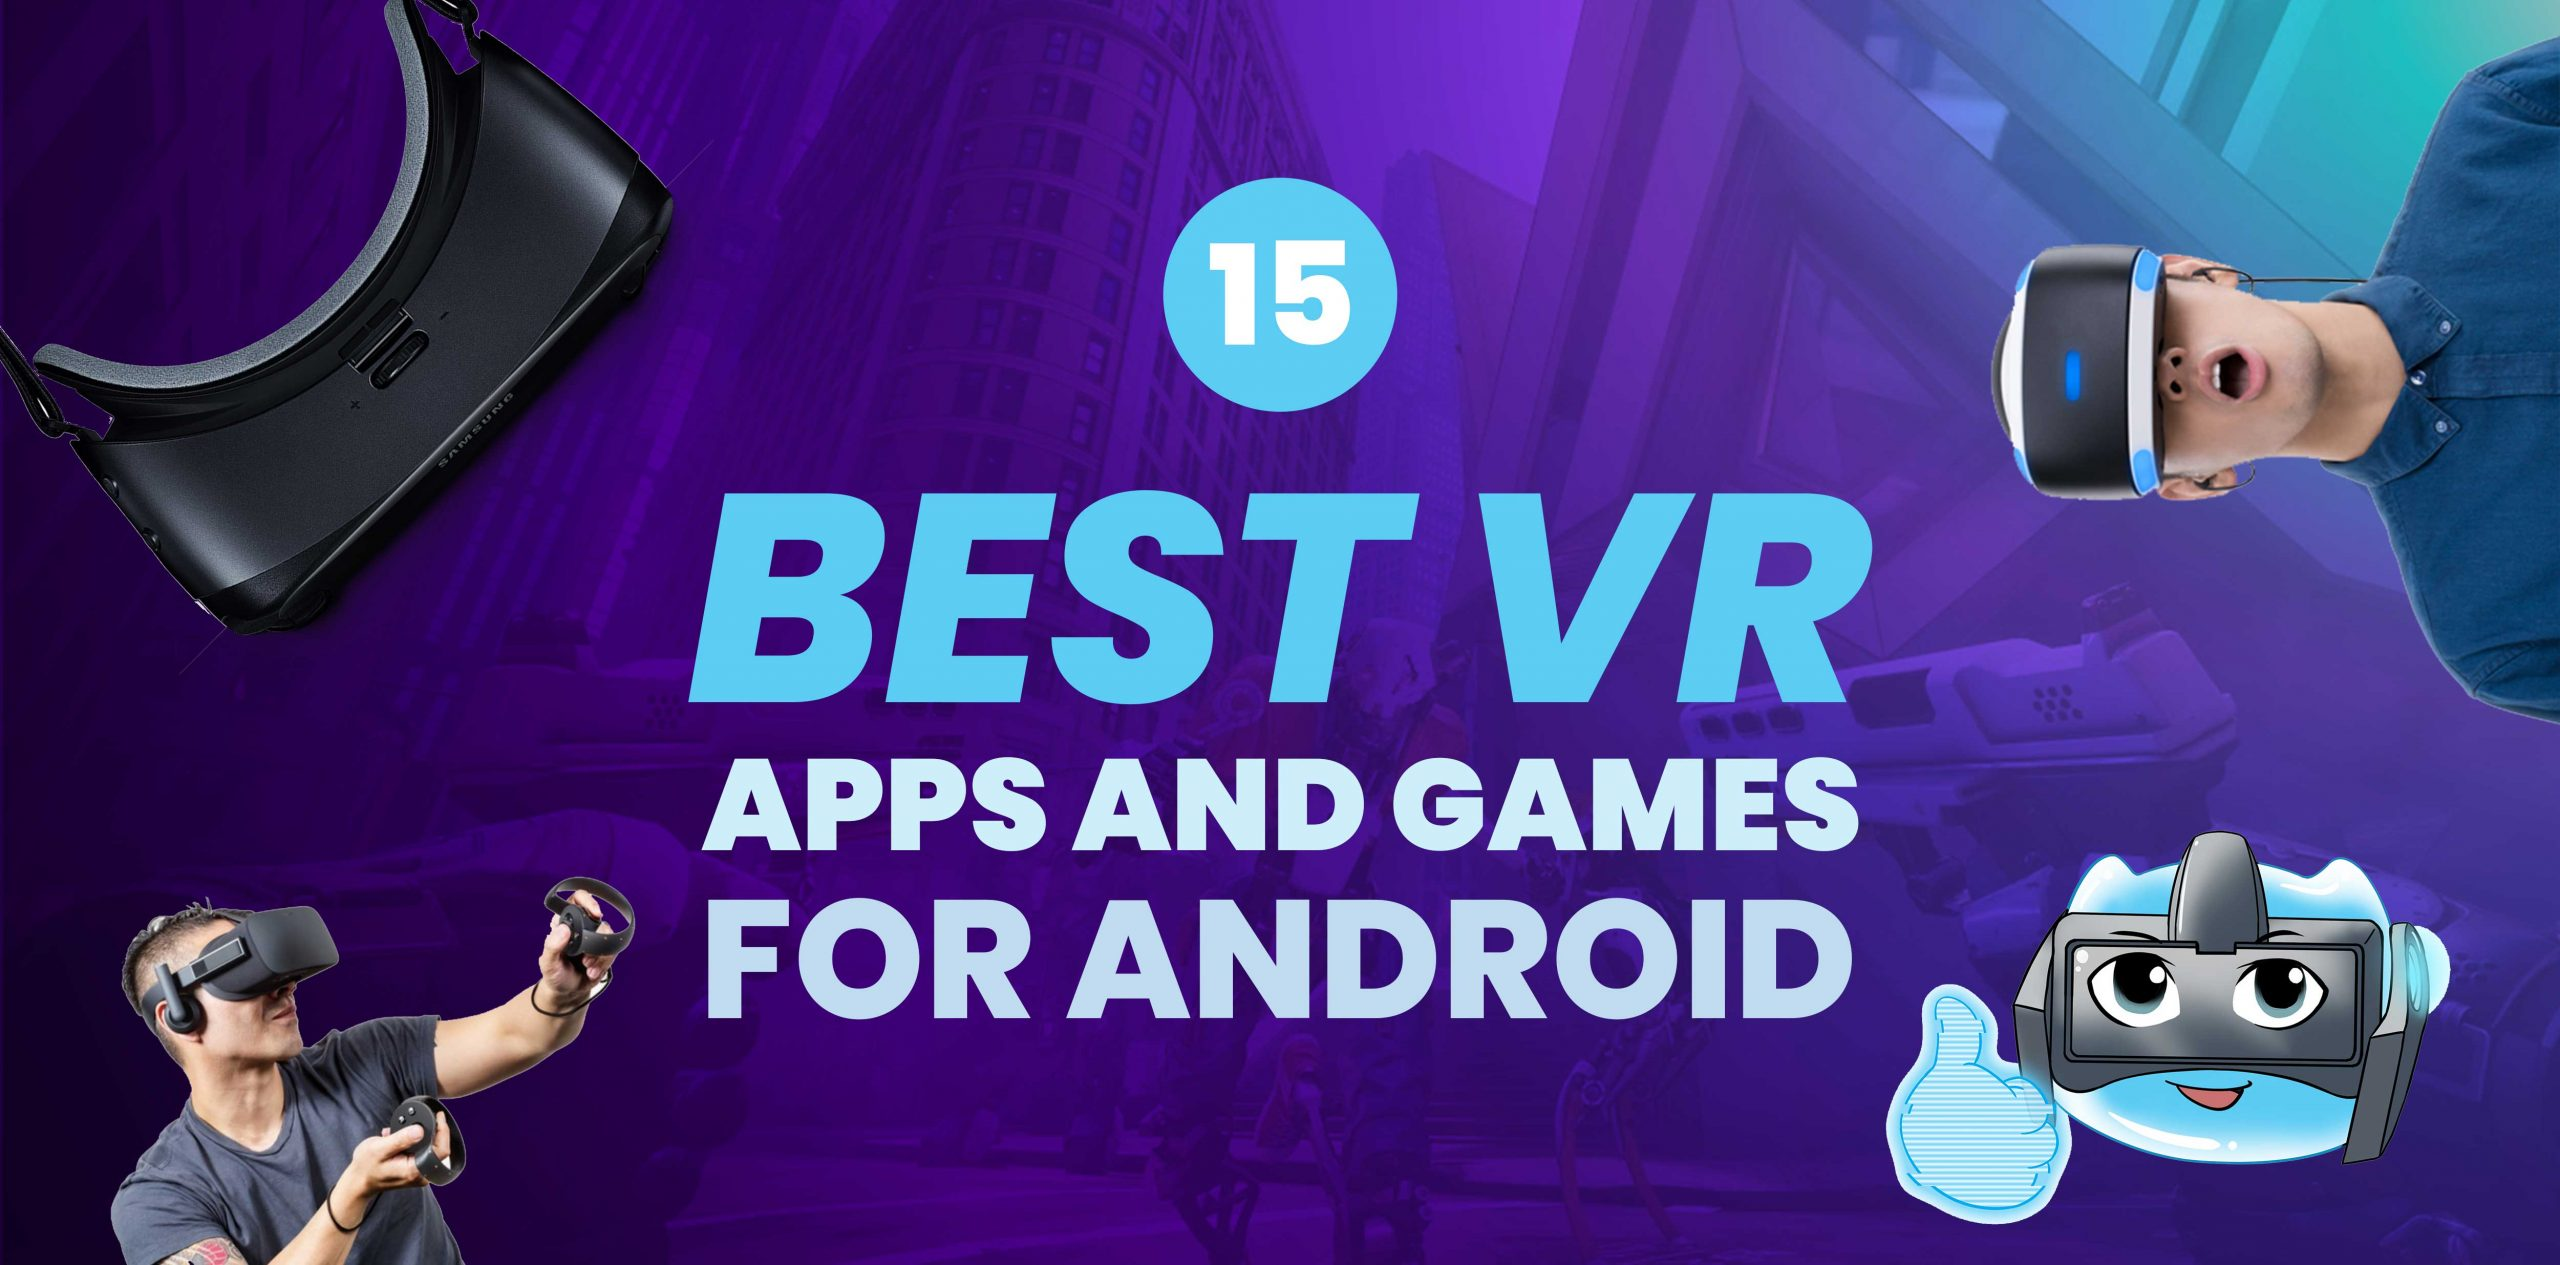 Best VR Apps & Games for Android 2017